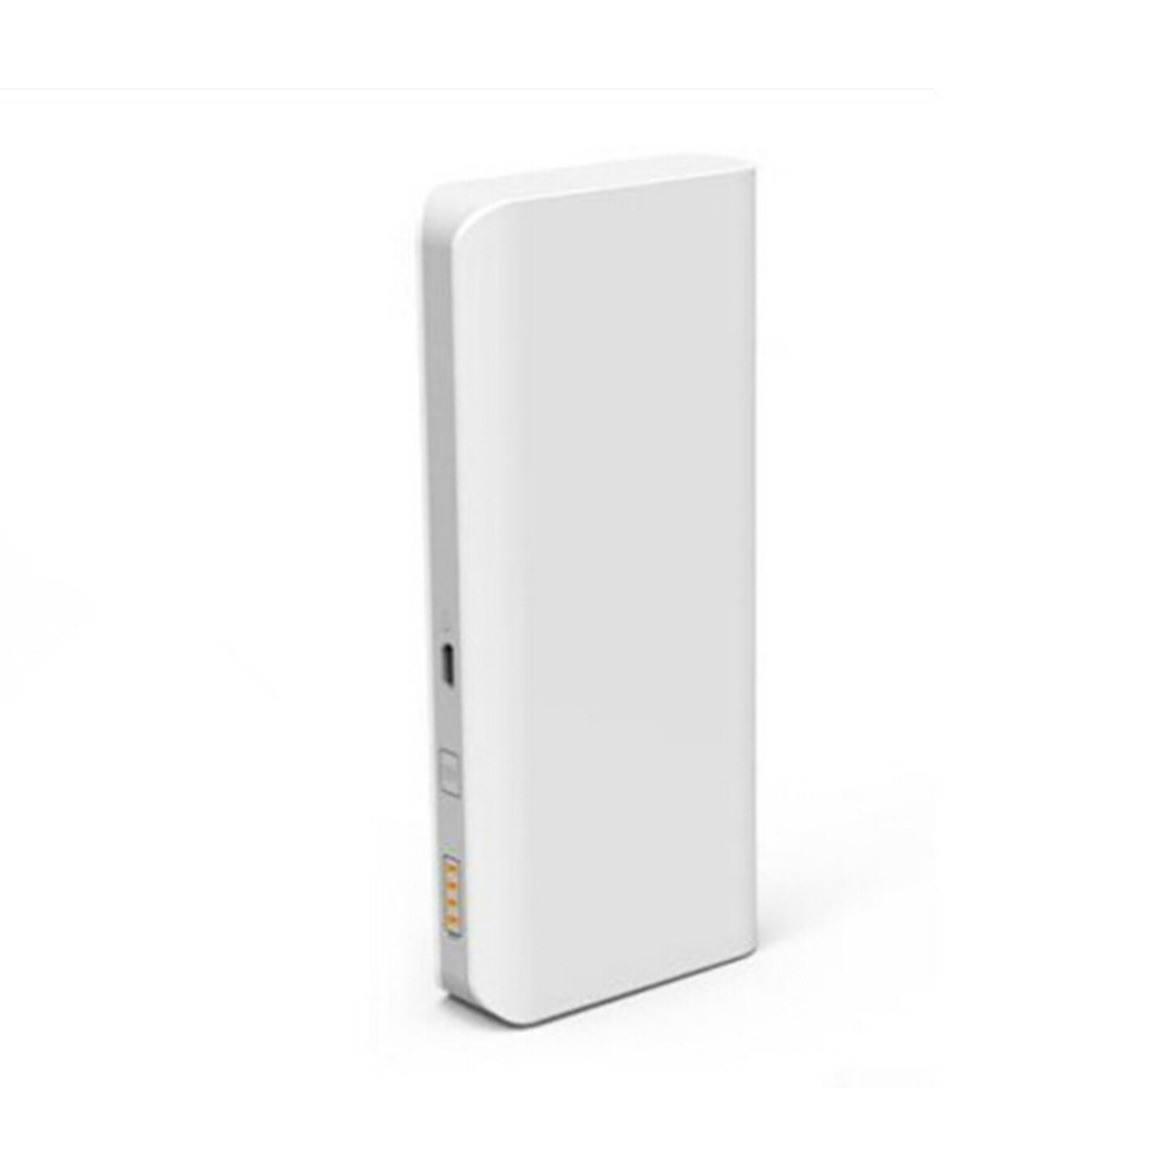 10000mah Power Bank Portable Charger For Xiaomi Redmi 2 By Official Powerbank